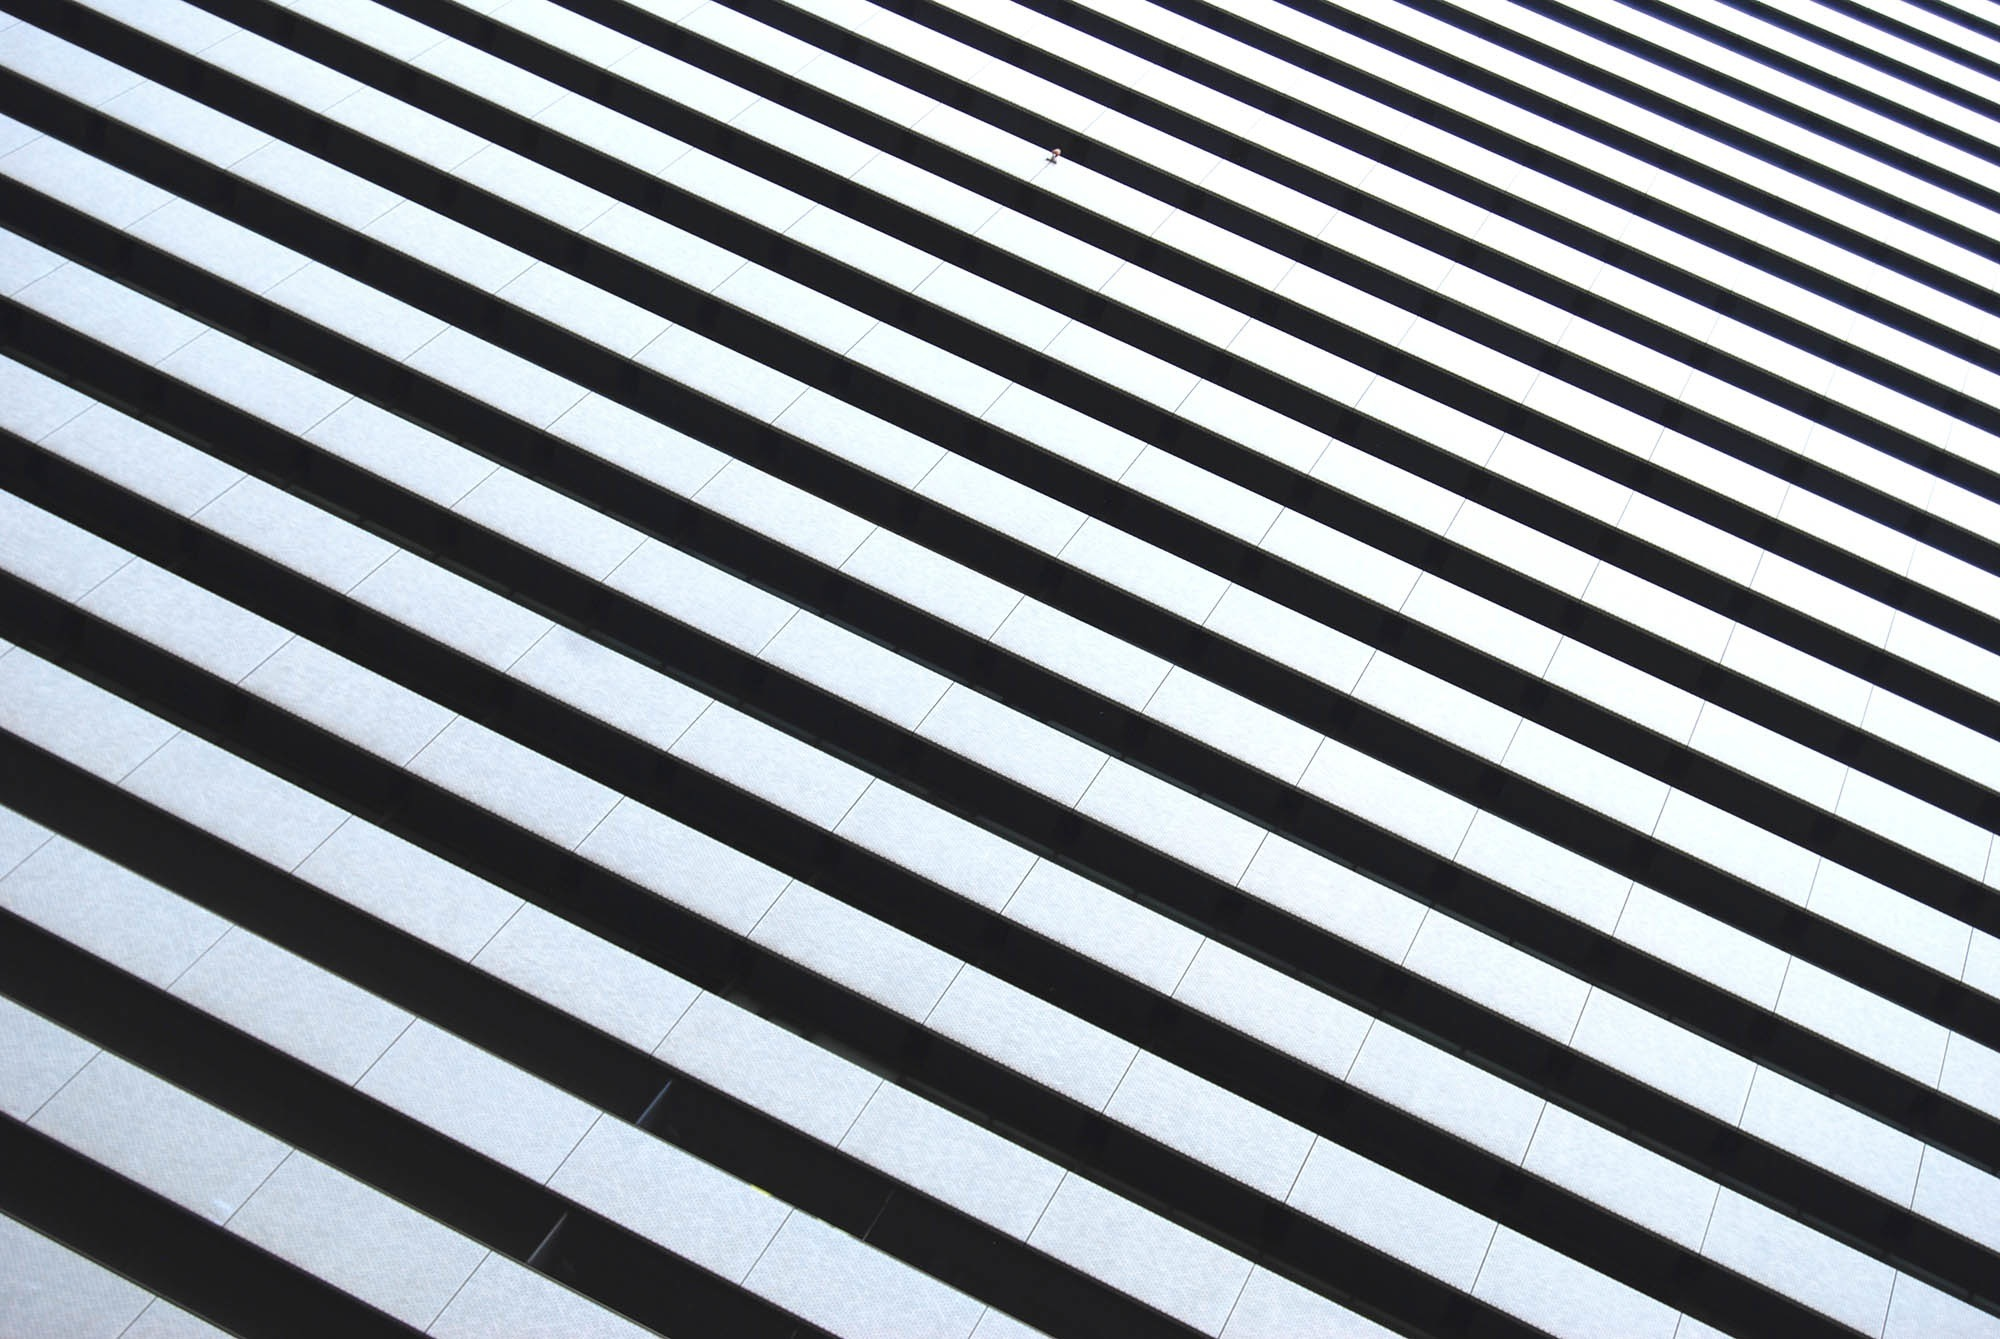 Architectural pattern, stripes, black and white, sun, effect, pattern, architecture